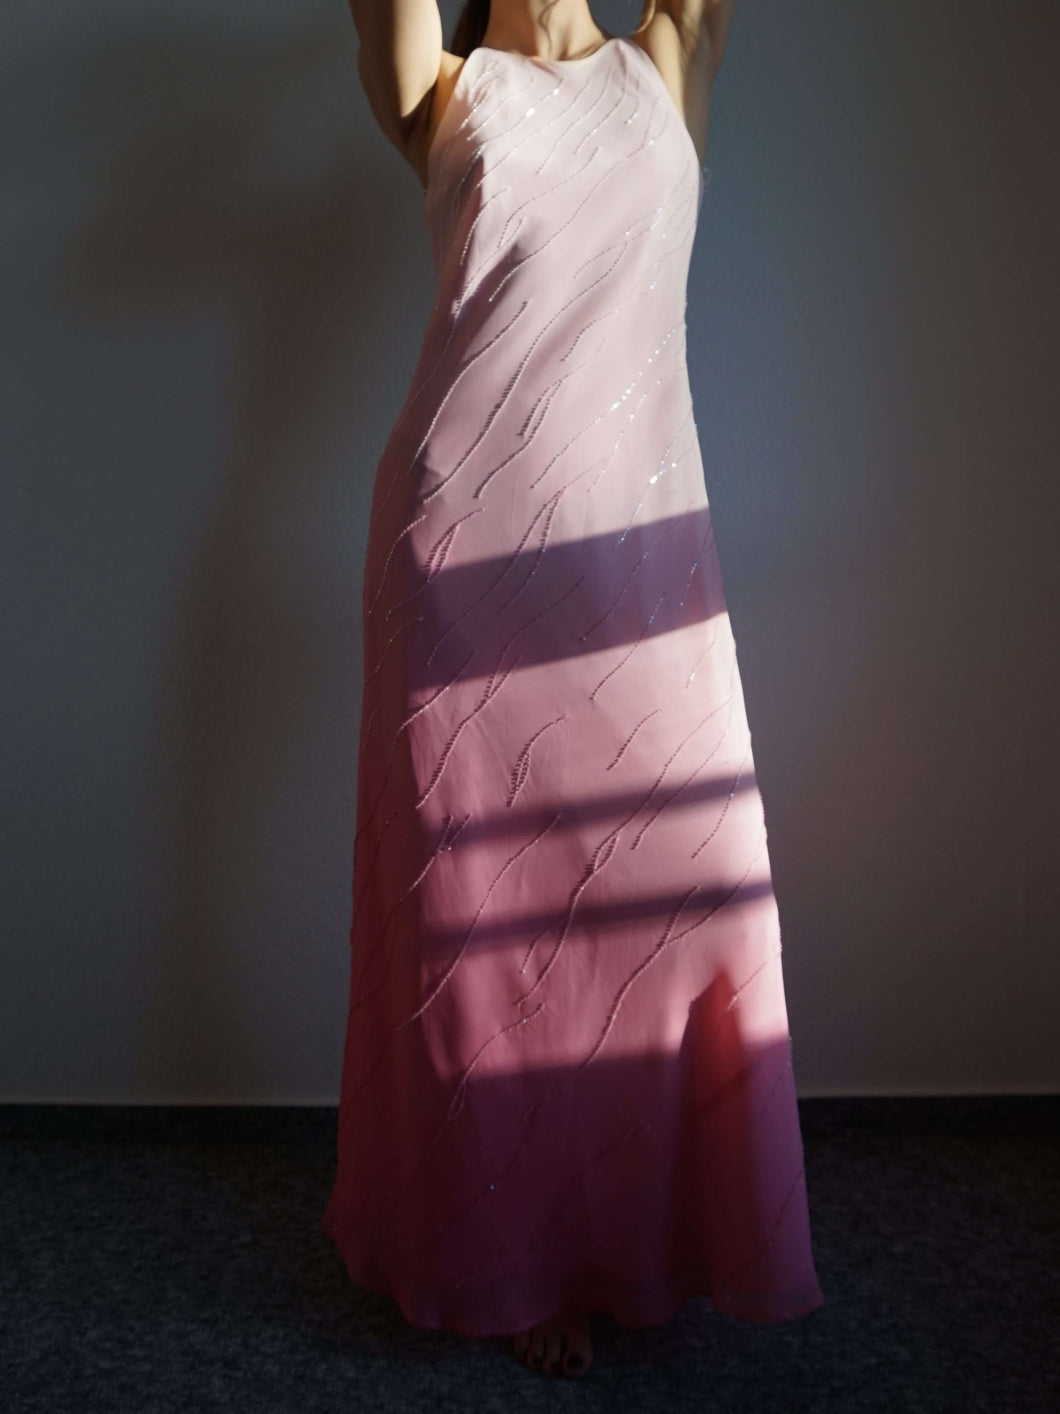 Y2k Sparkly Gradient Color Slip Dress | pink | beaded | S:[Past out]:[vintage clothes]